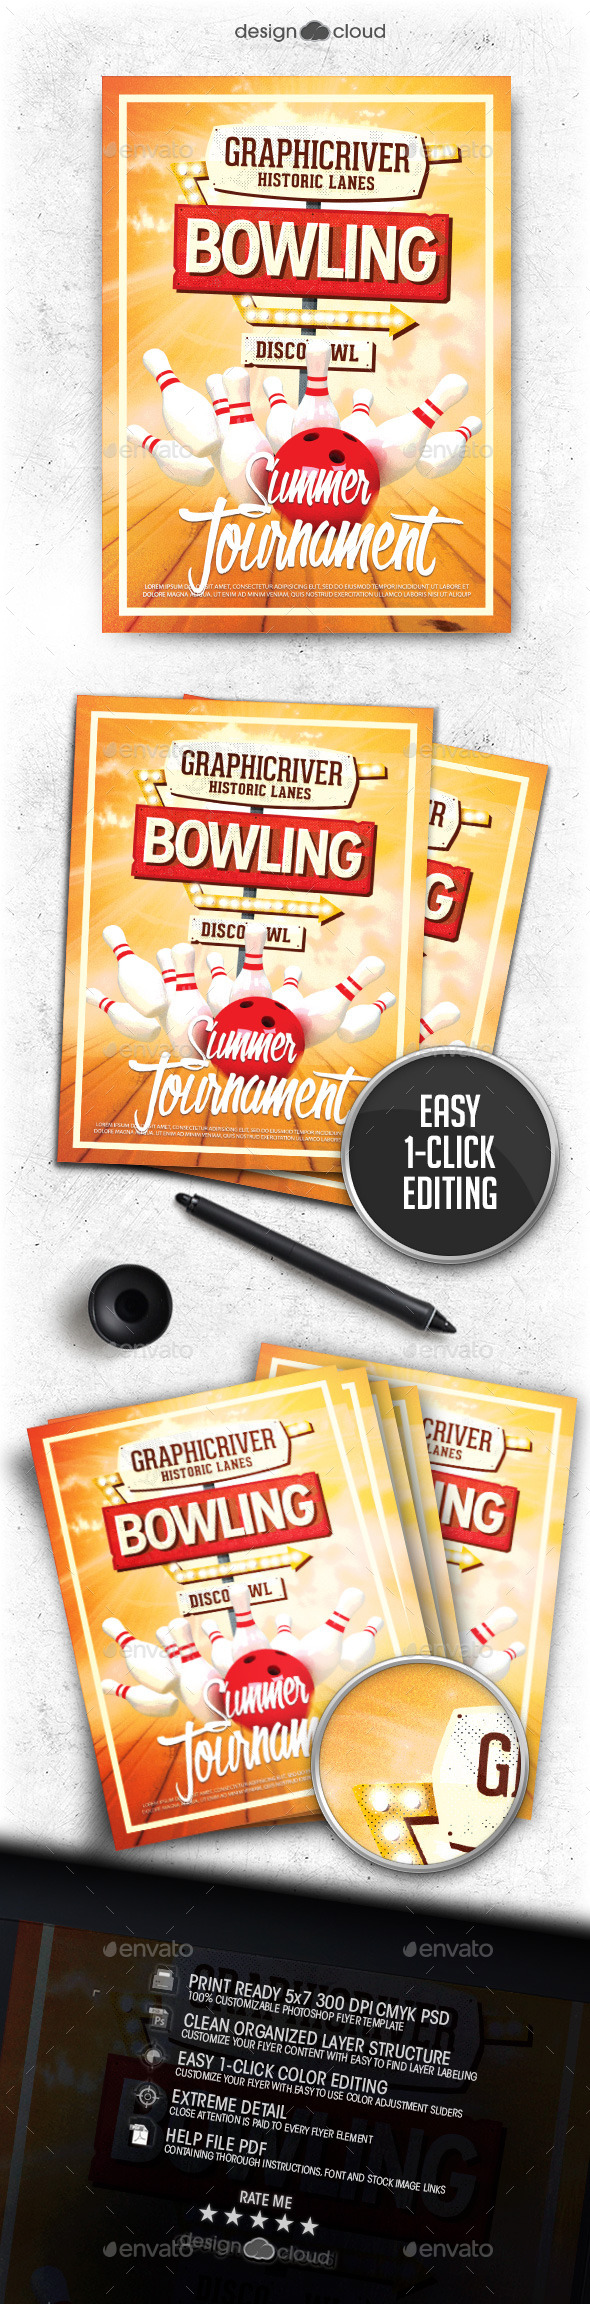 Bowling Night Flyer Template - Sports Events